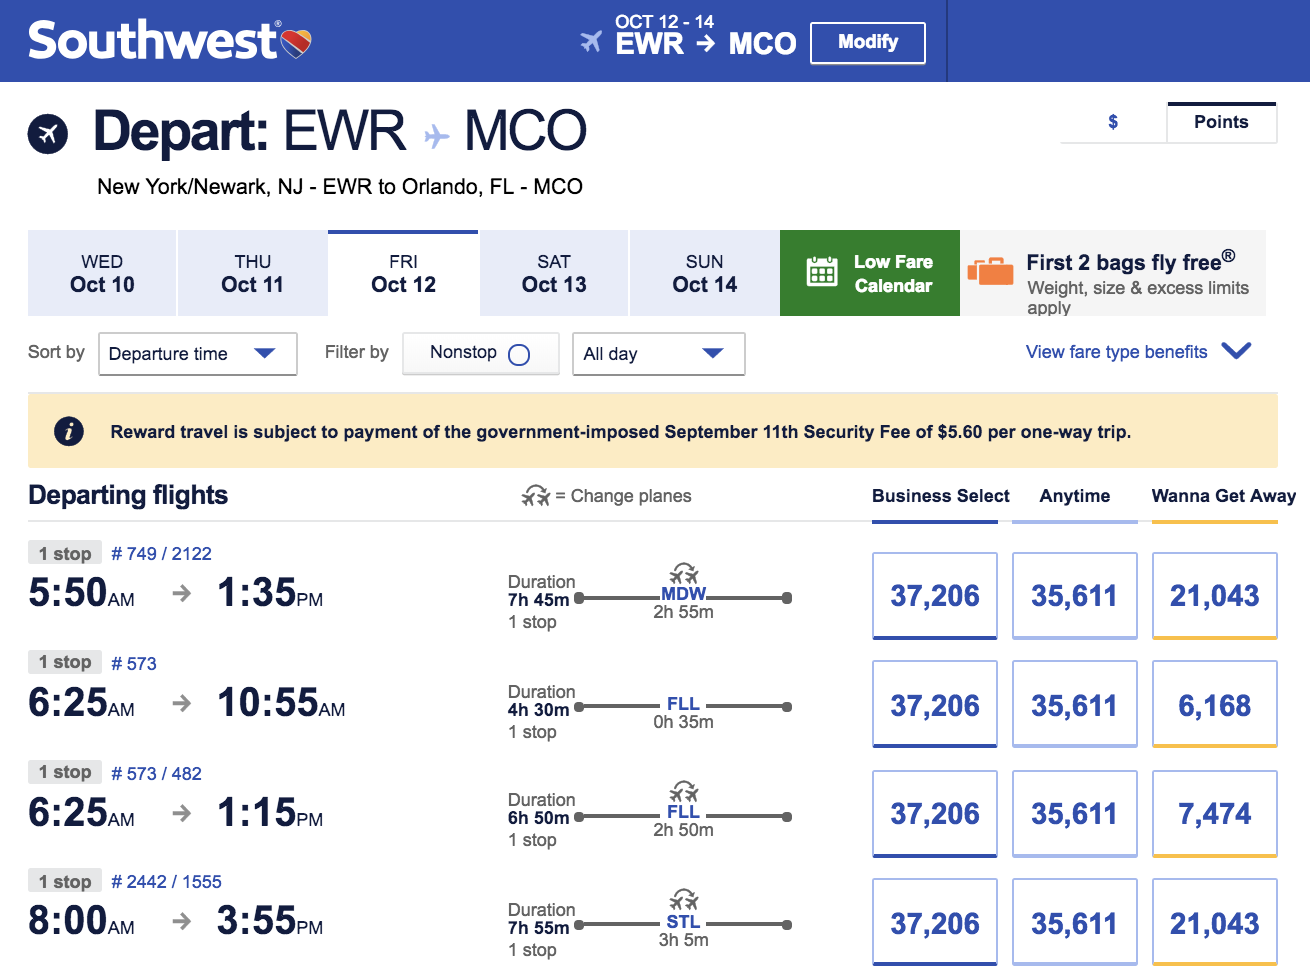 4 Southwest Credit Card Offers That Could Help You Fly for Free